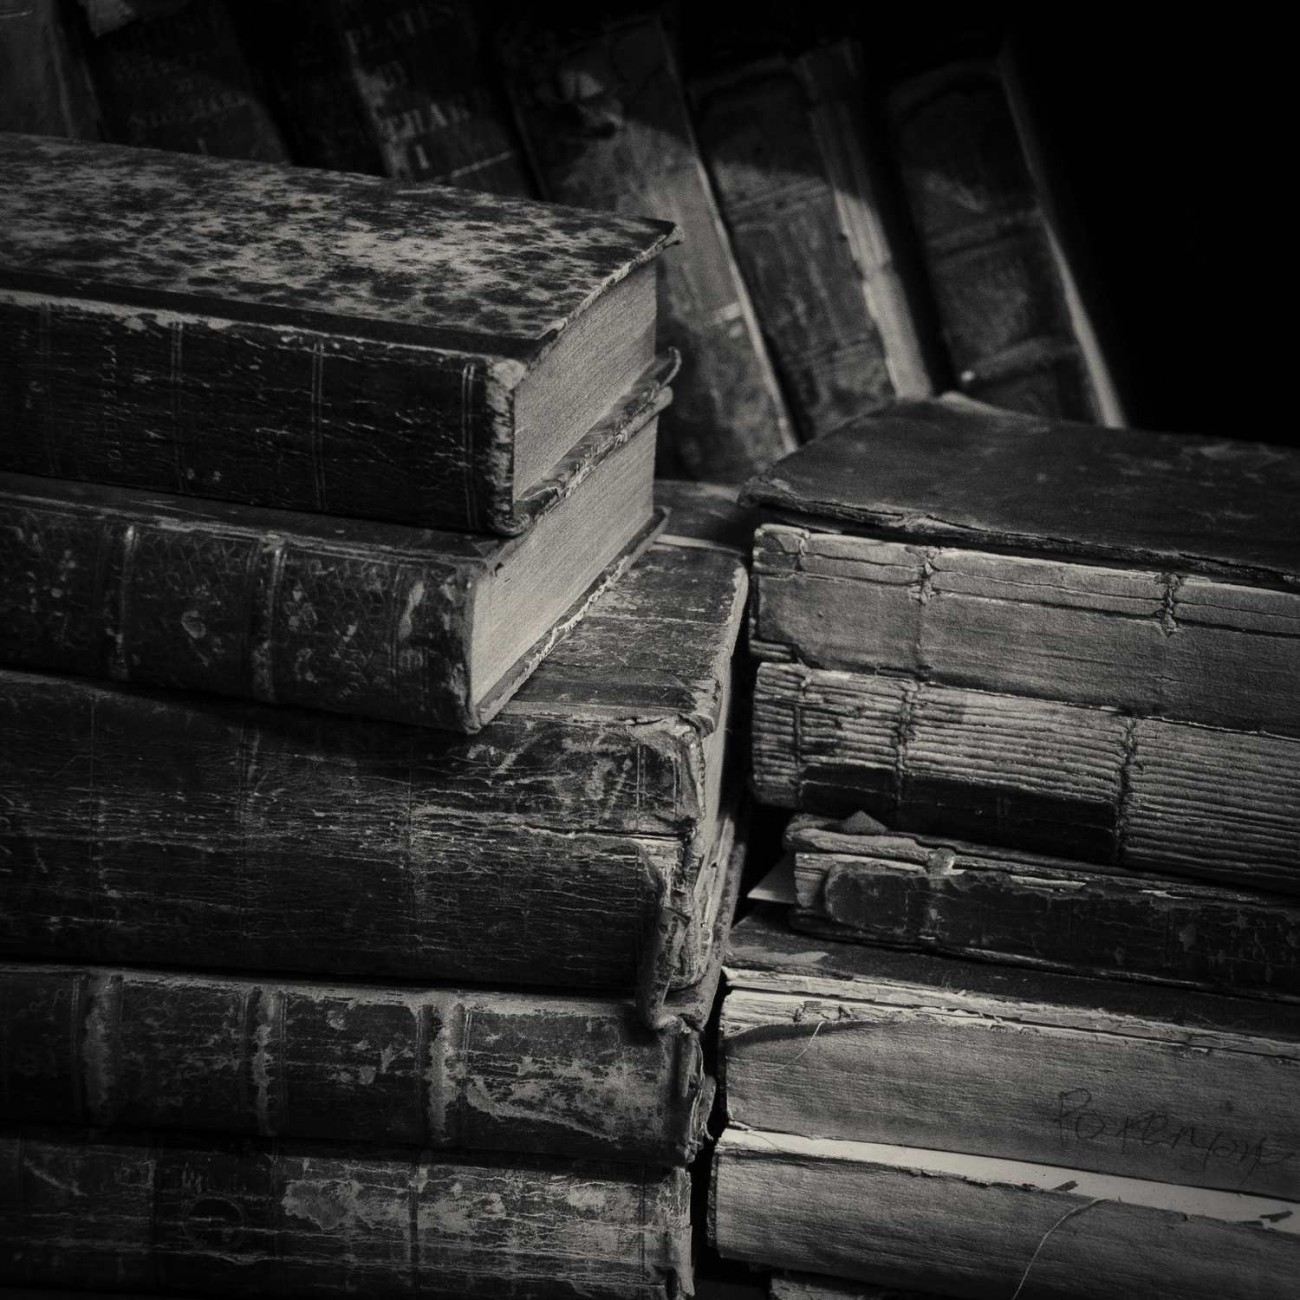 Stacks of old books, England, 2010